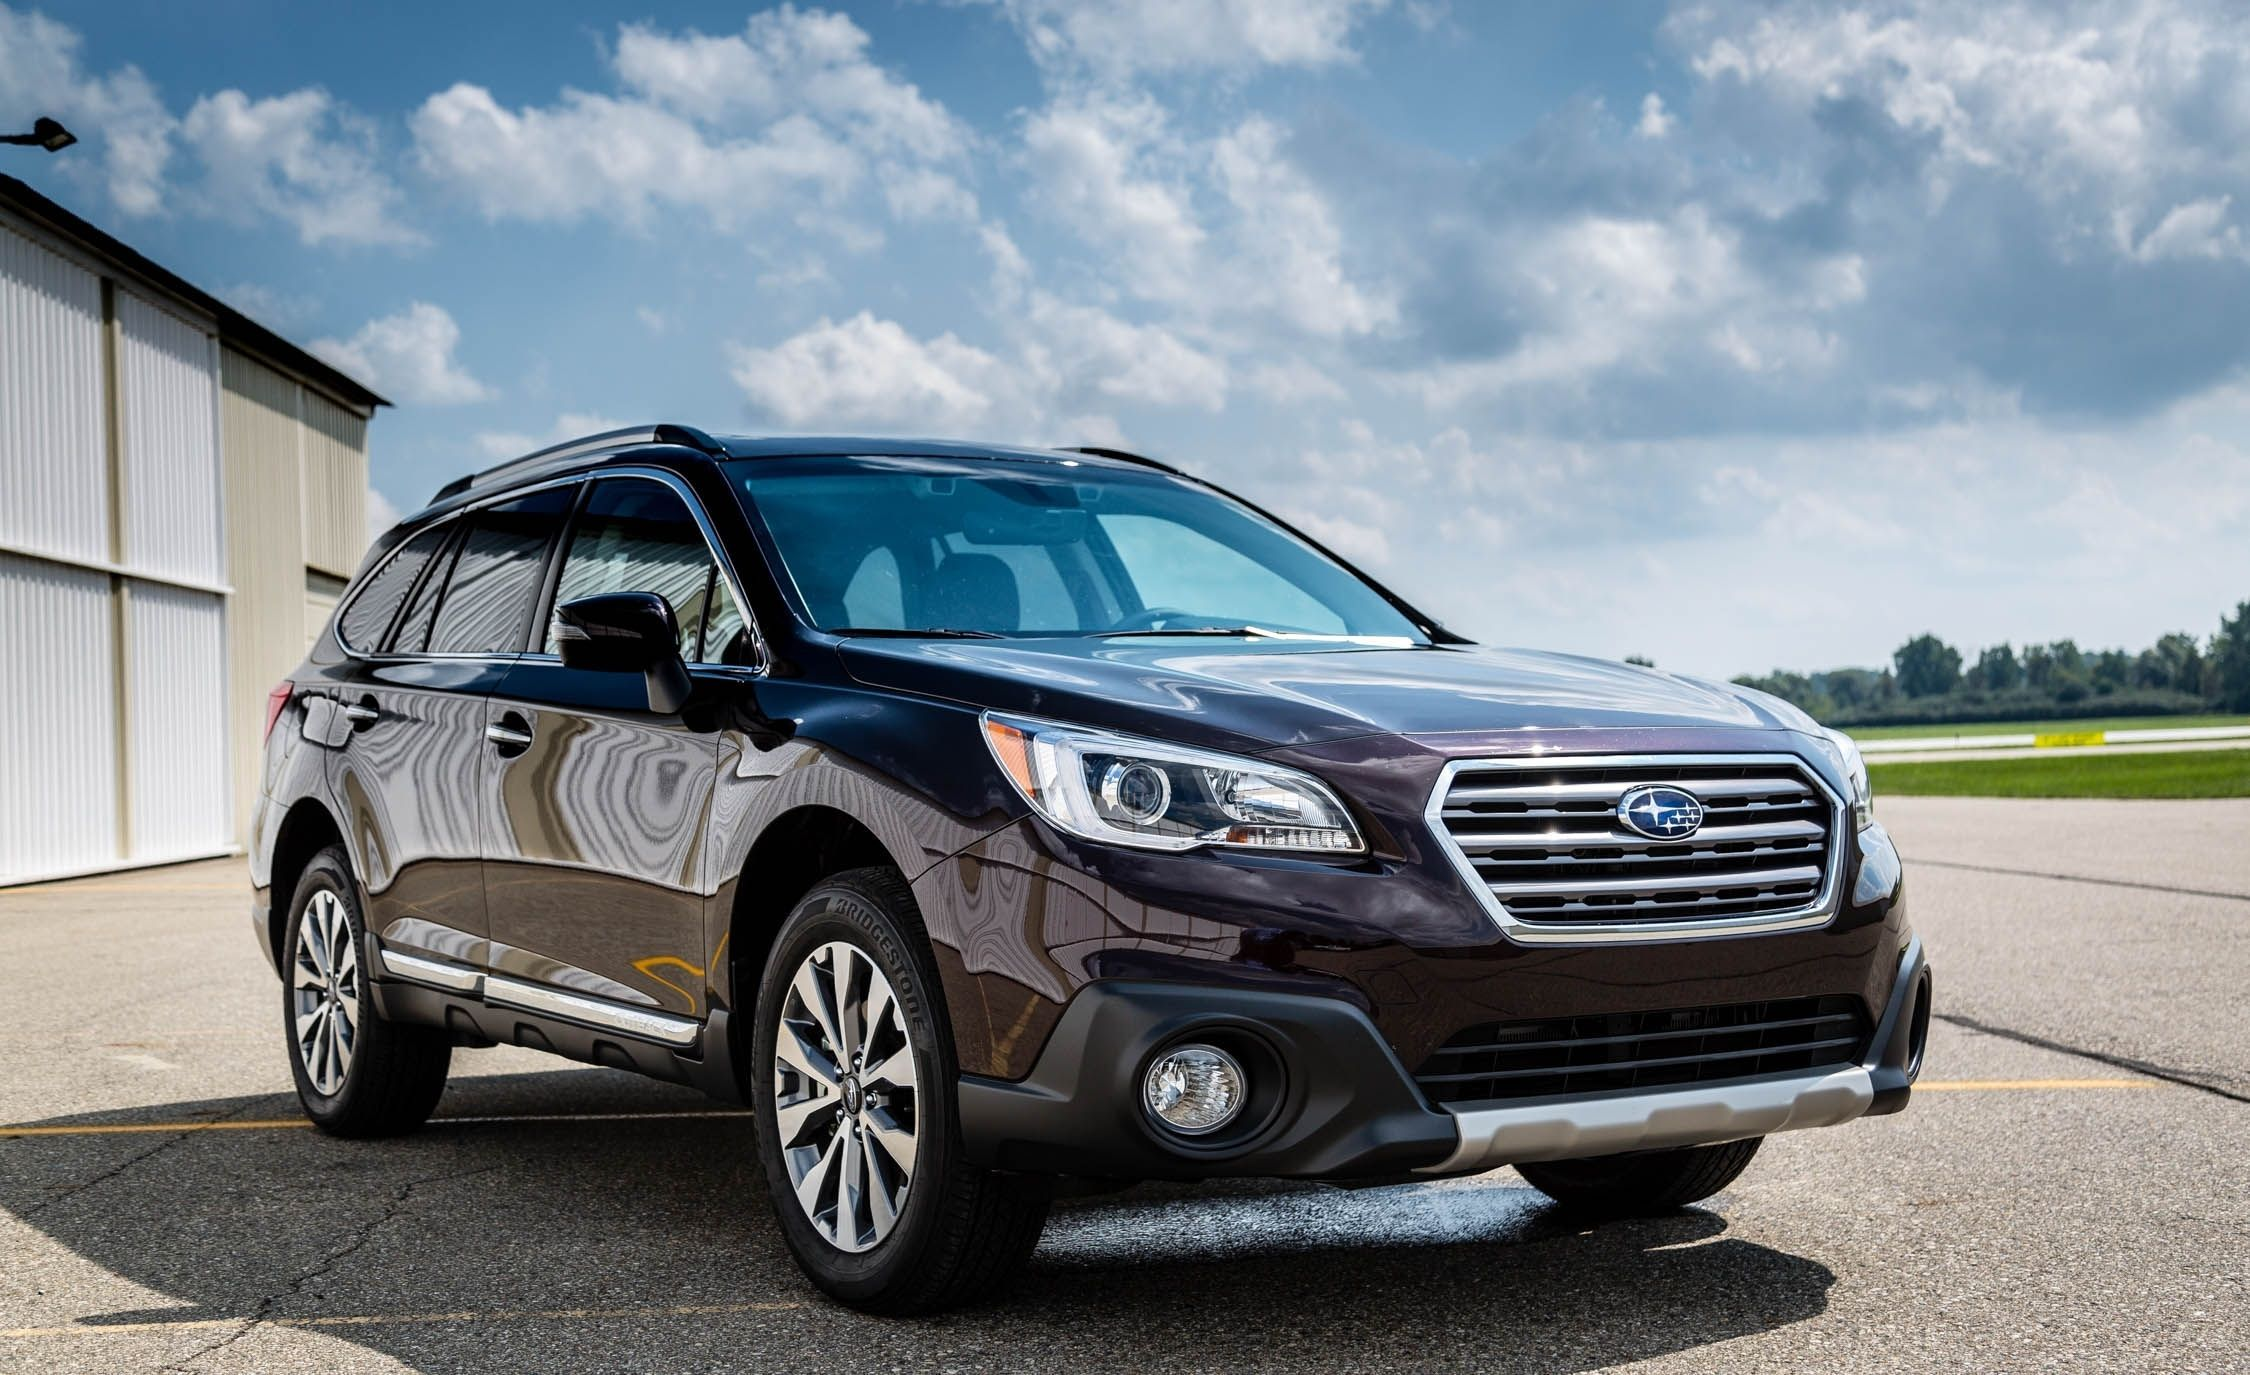 12 New-Car Lease Deals to Make Your Memorial Day Weekend - Slide 6